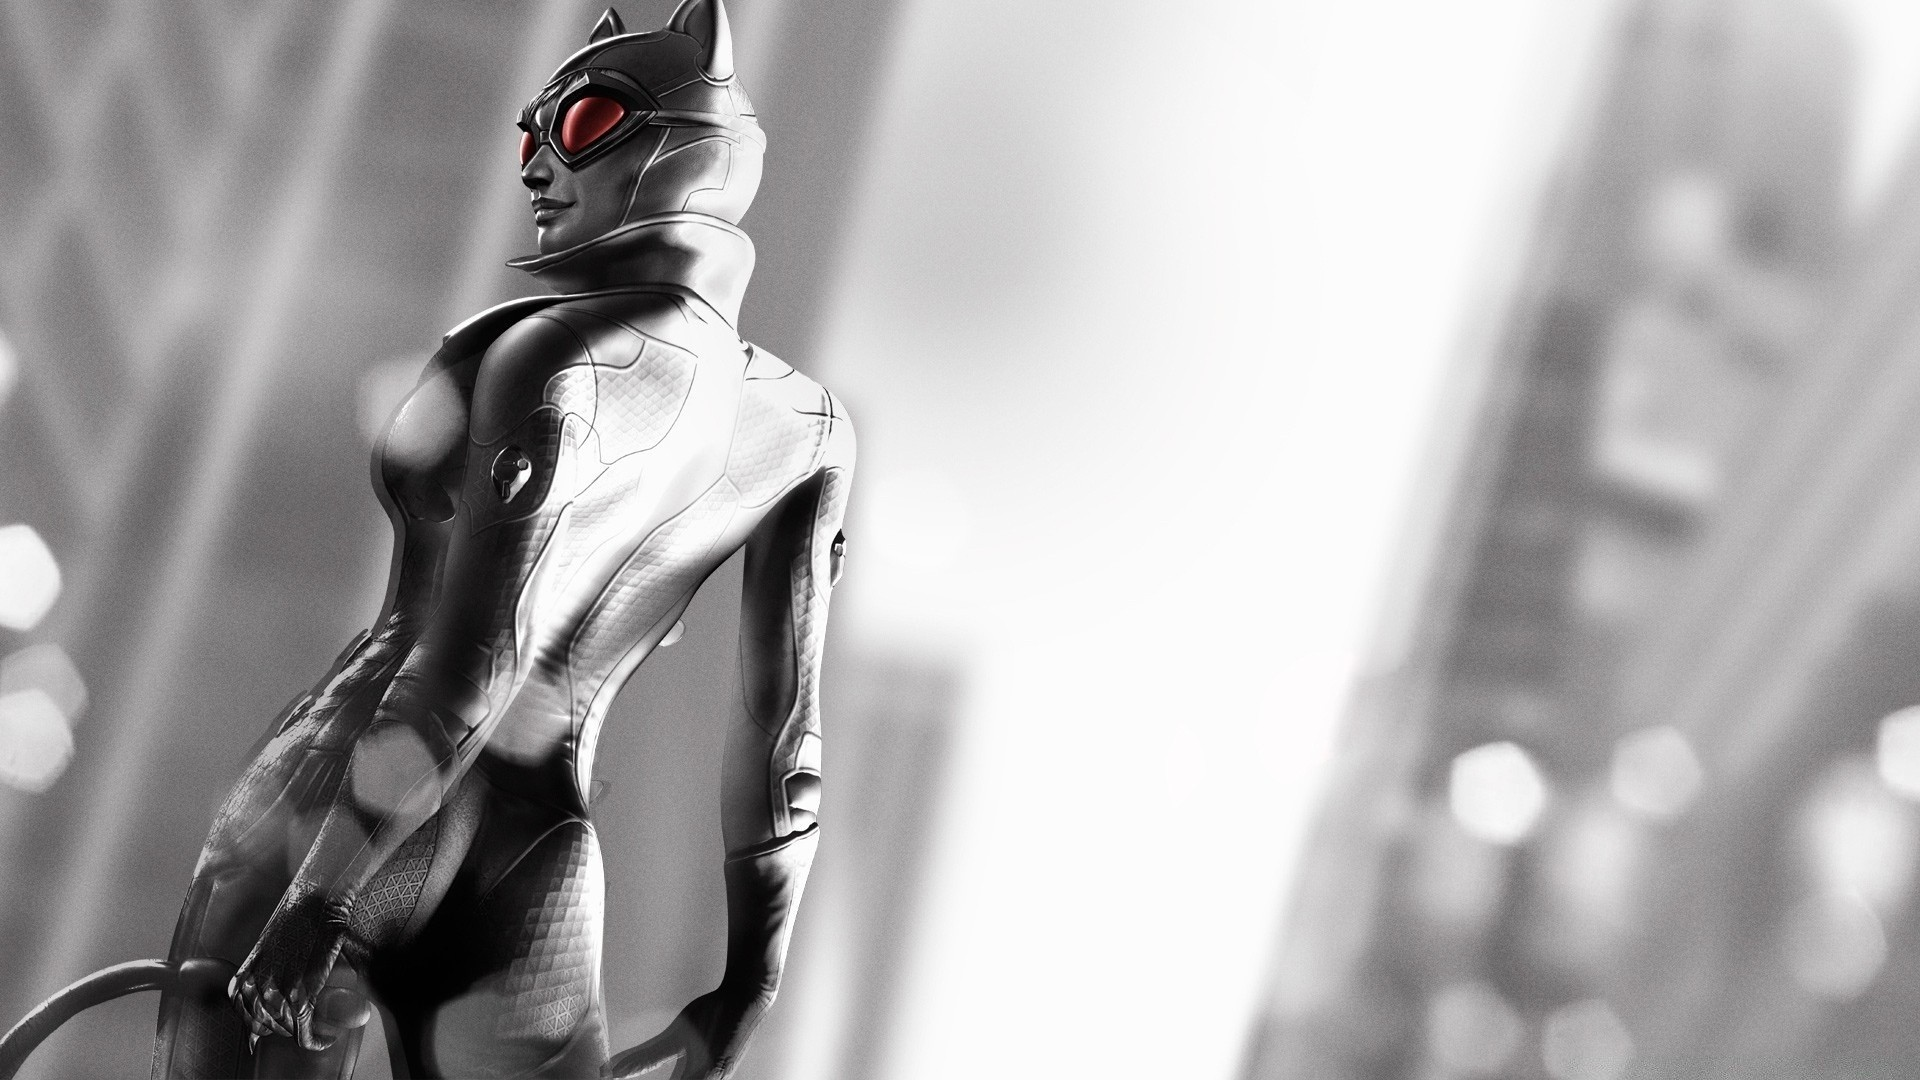 Arkham City Catwoman Android Wallpapers For Free